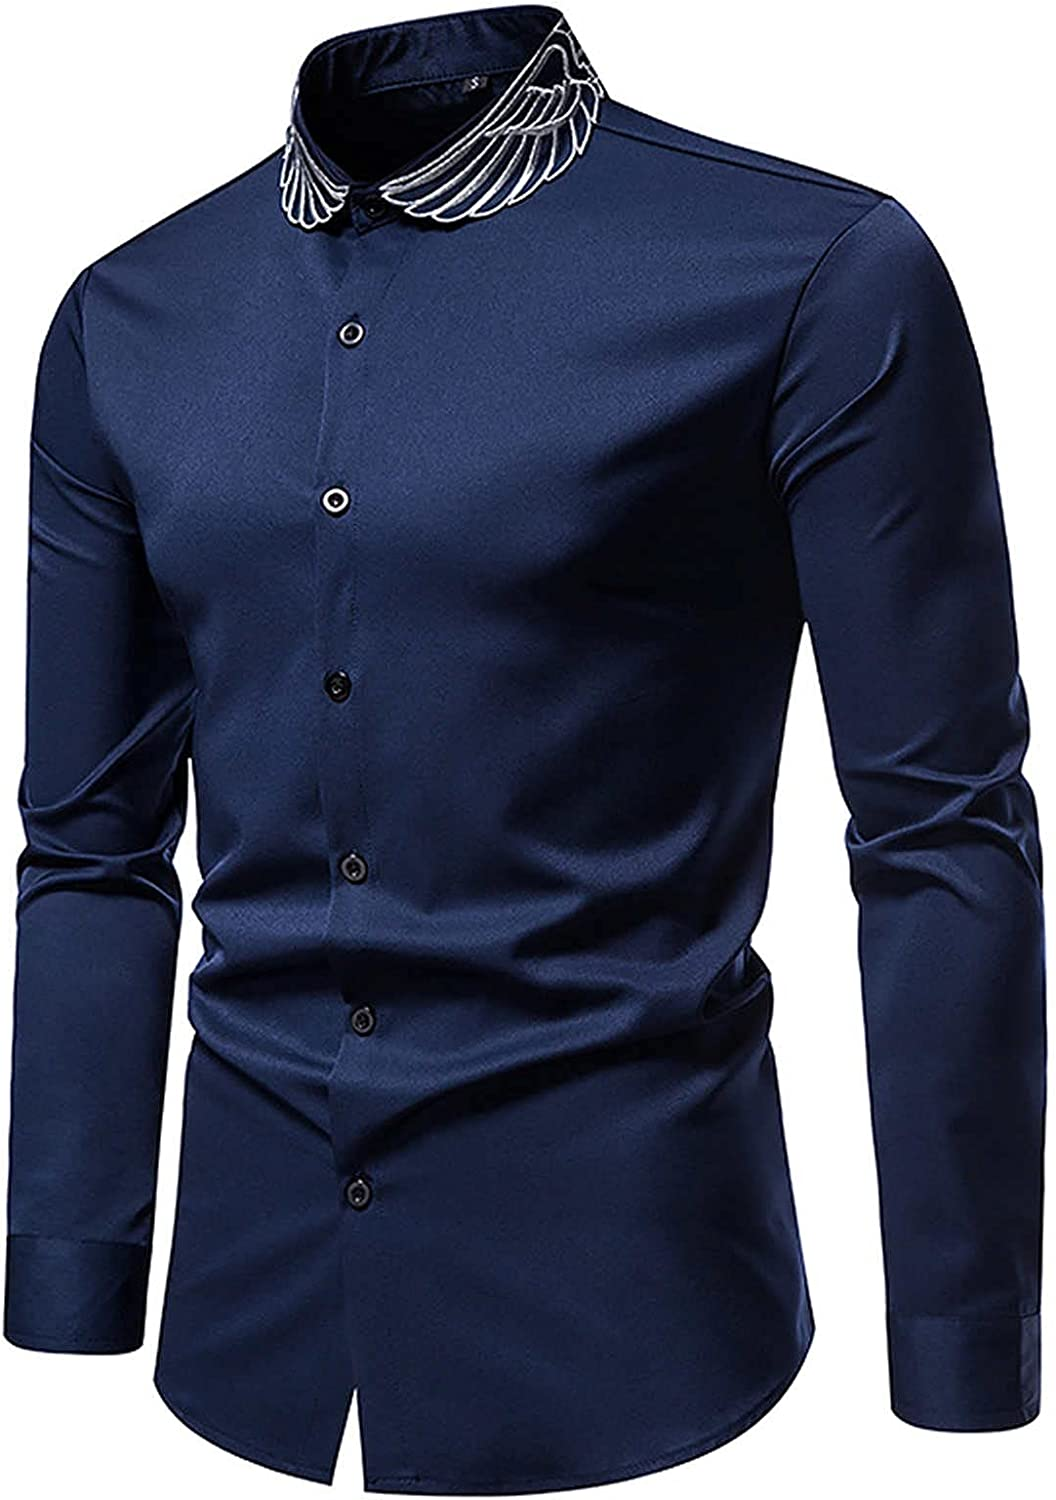 Dress Shirts for Men Long Sleeve Casual Slim fit Button Down Work Shirt Printed Collar Solid Color Tops Blouse